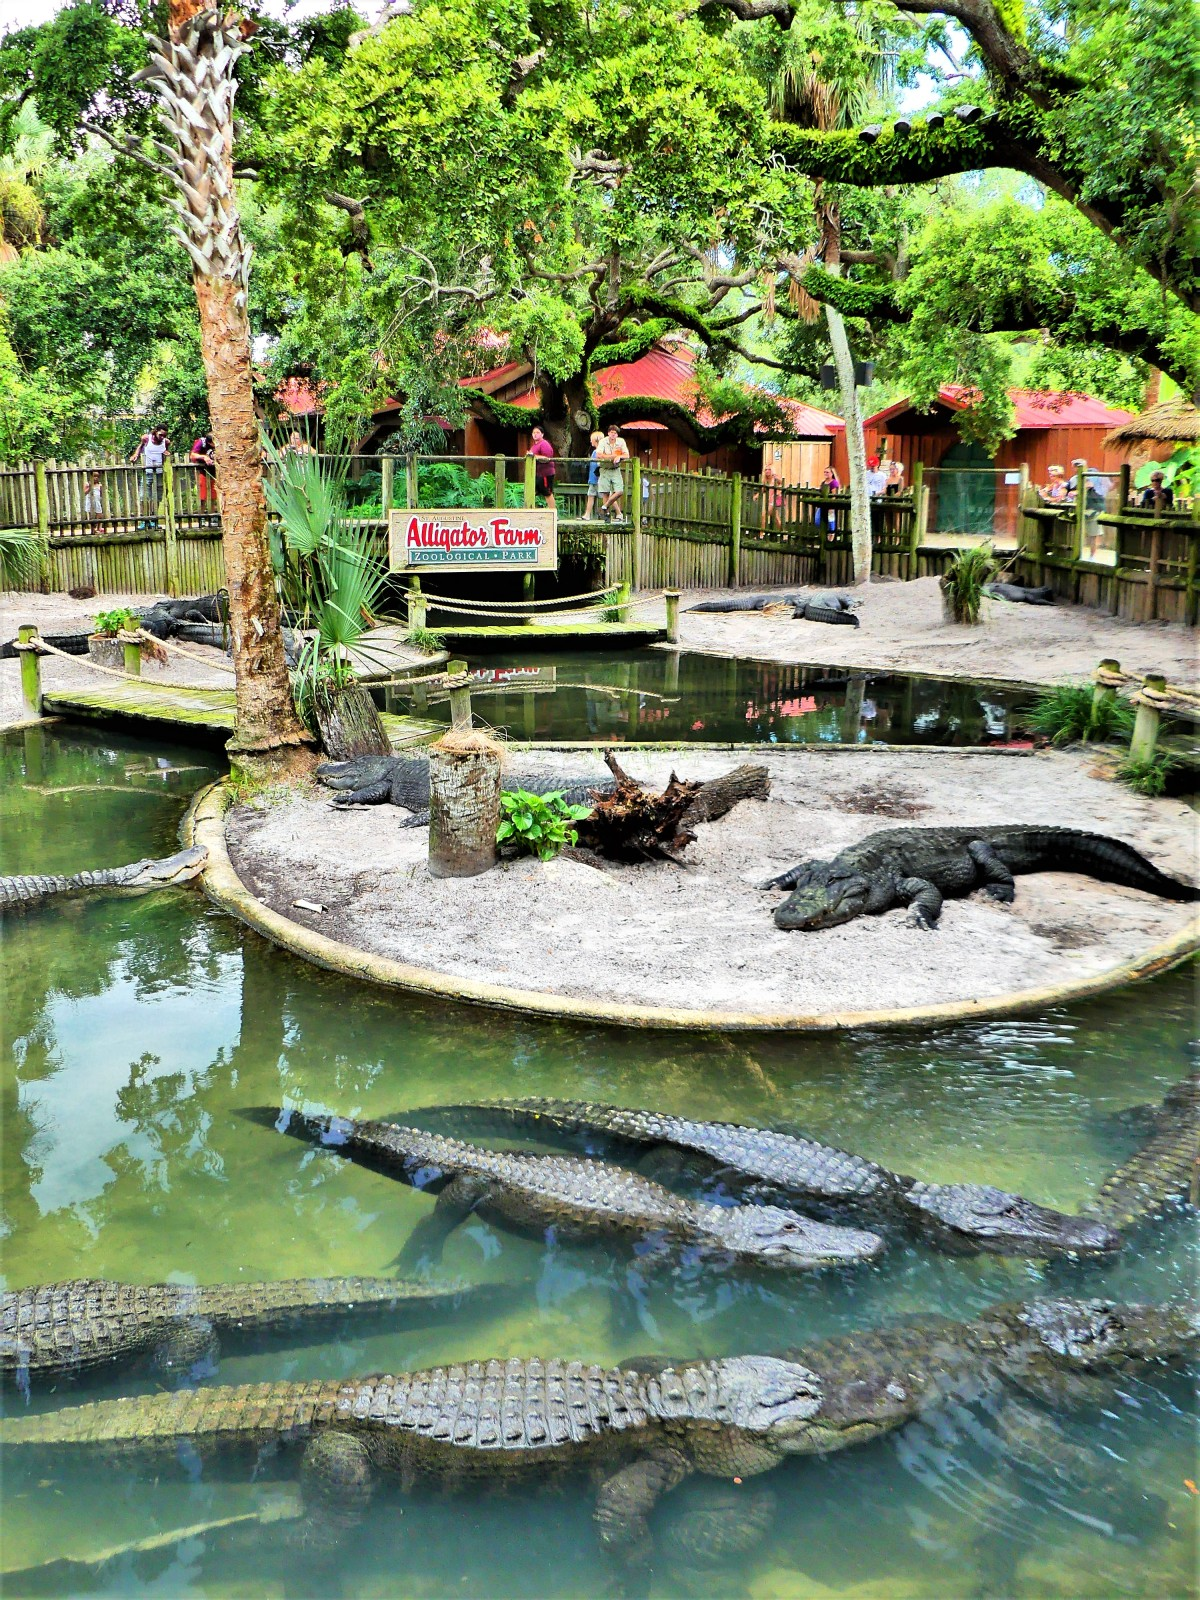 Alligator lagoon.jpg